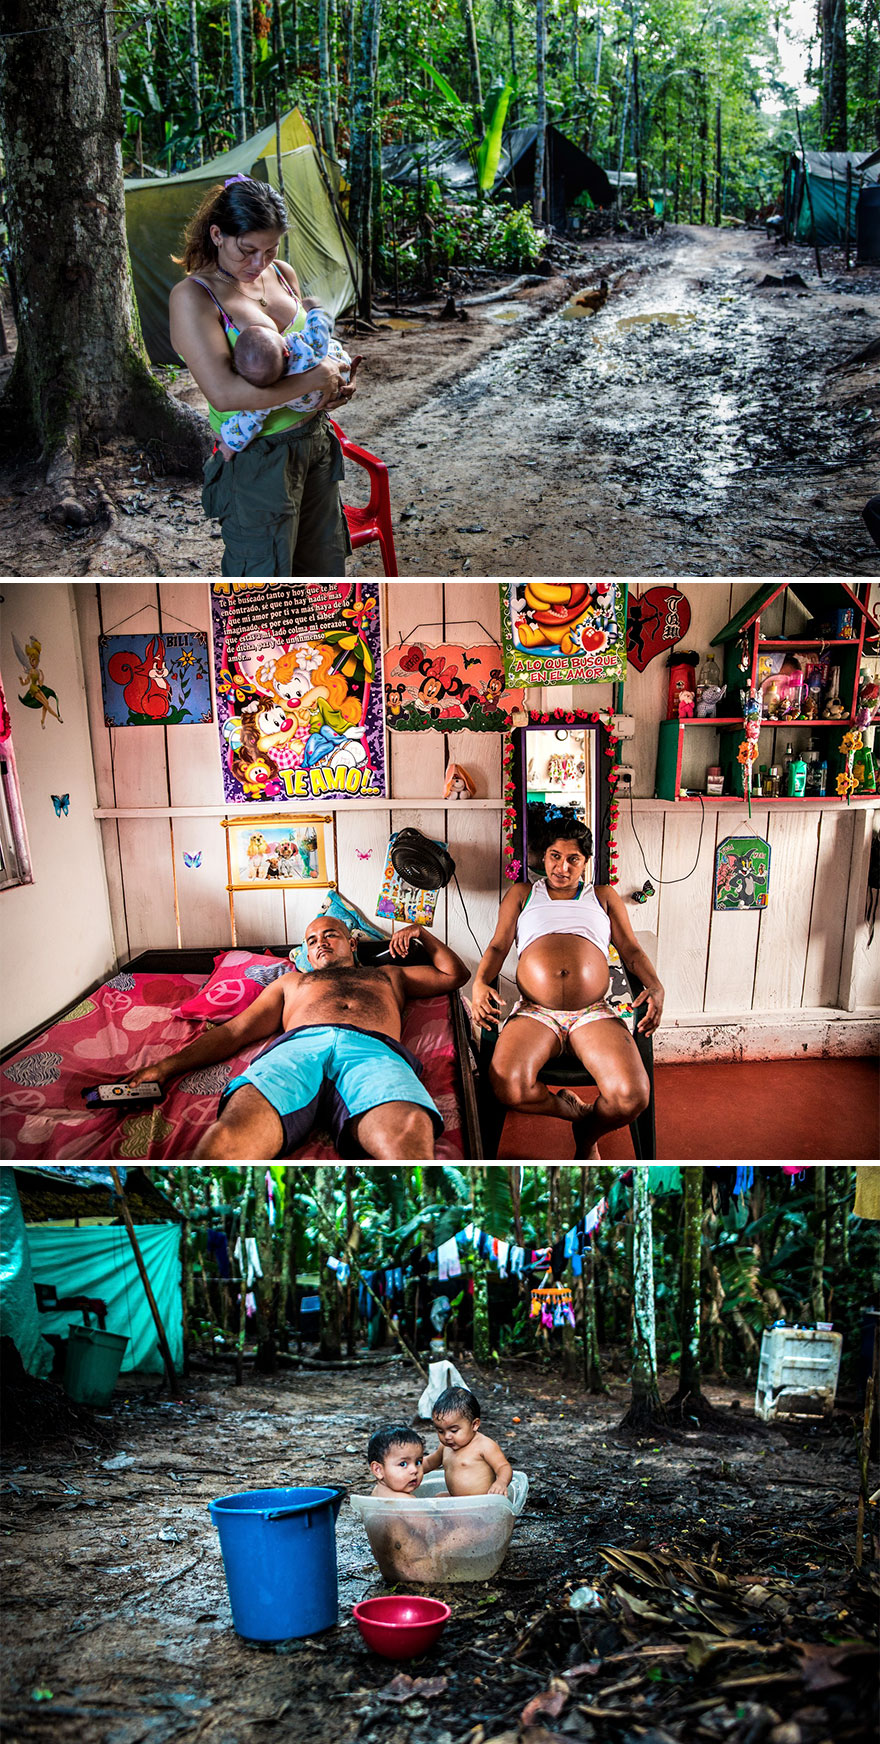 """Contemporary Issues, Stories, 2nd Prize, """"Colombia, (Re)birth"""" By Catalina Martin-Chico"""